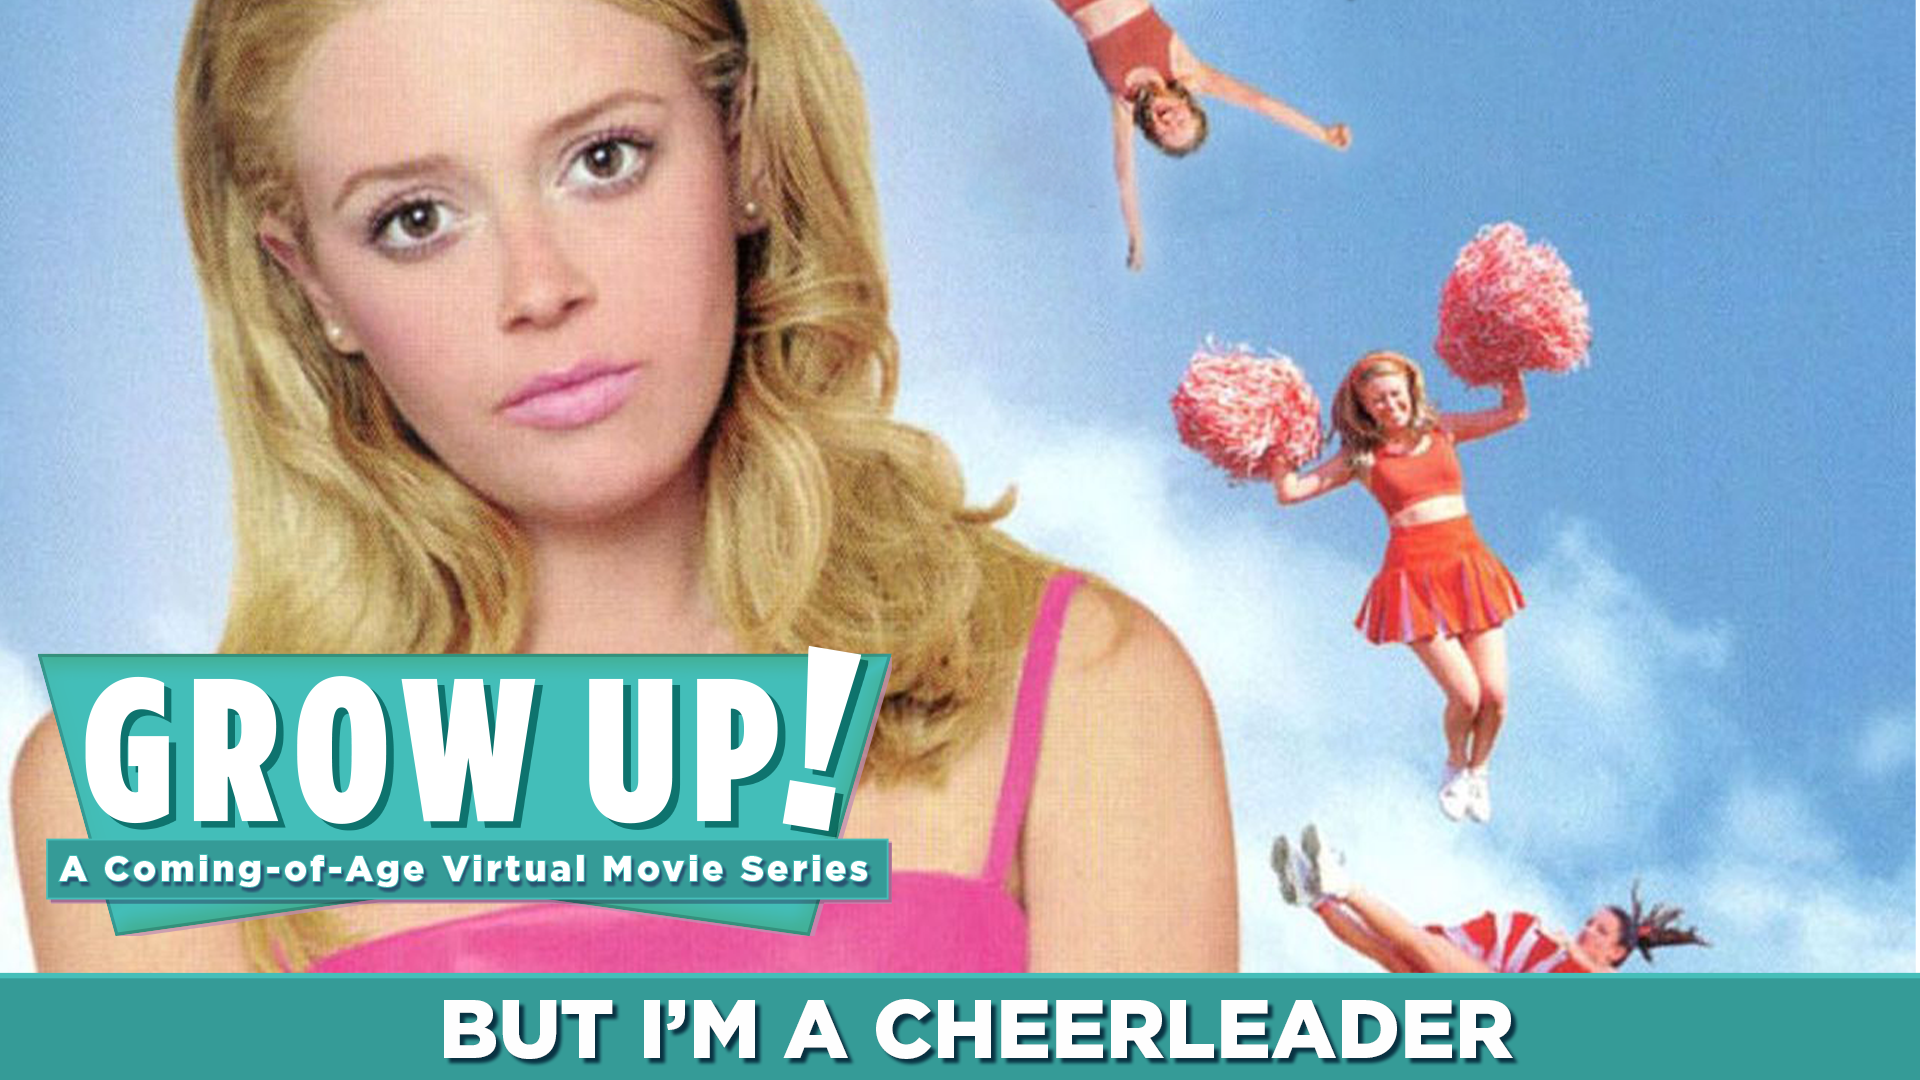 Grow Up! A Coming-of-Age Virtual Movie Series - But I'm a Cheerleader